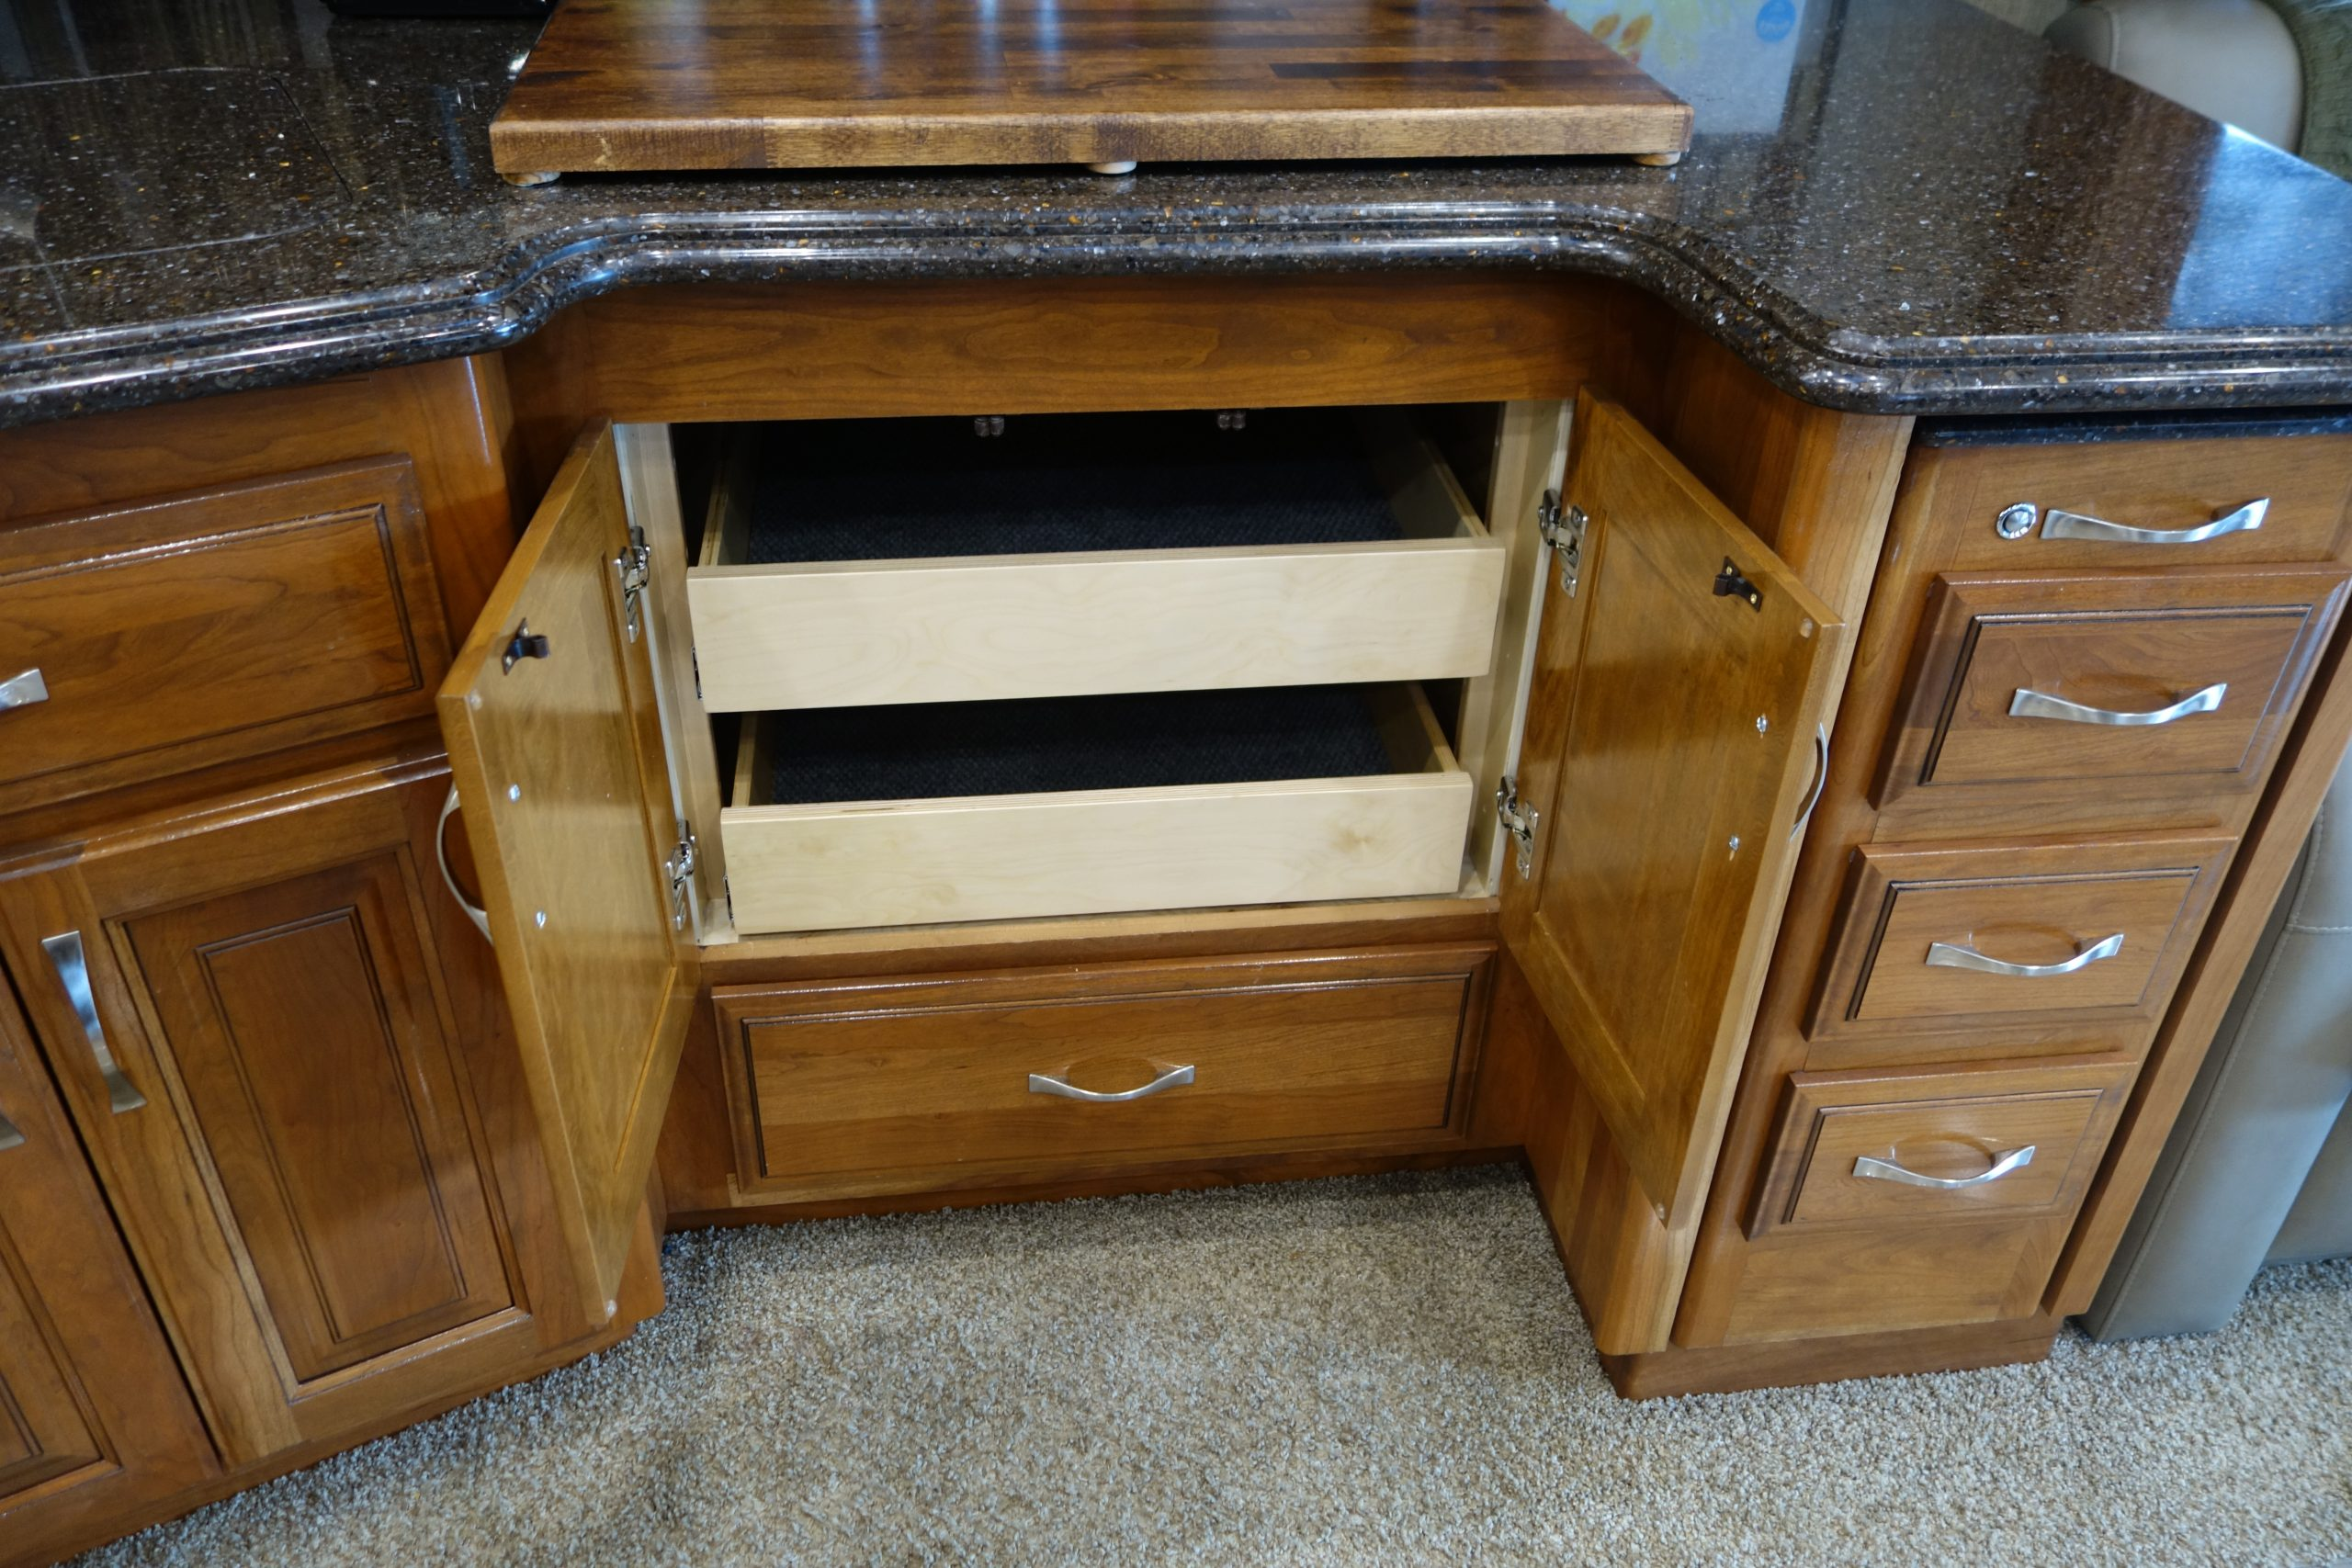 Custom RV kitchen cabinets with pullout drawers